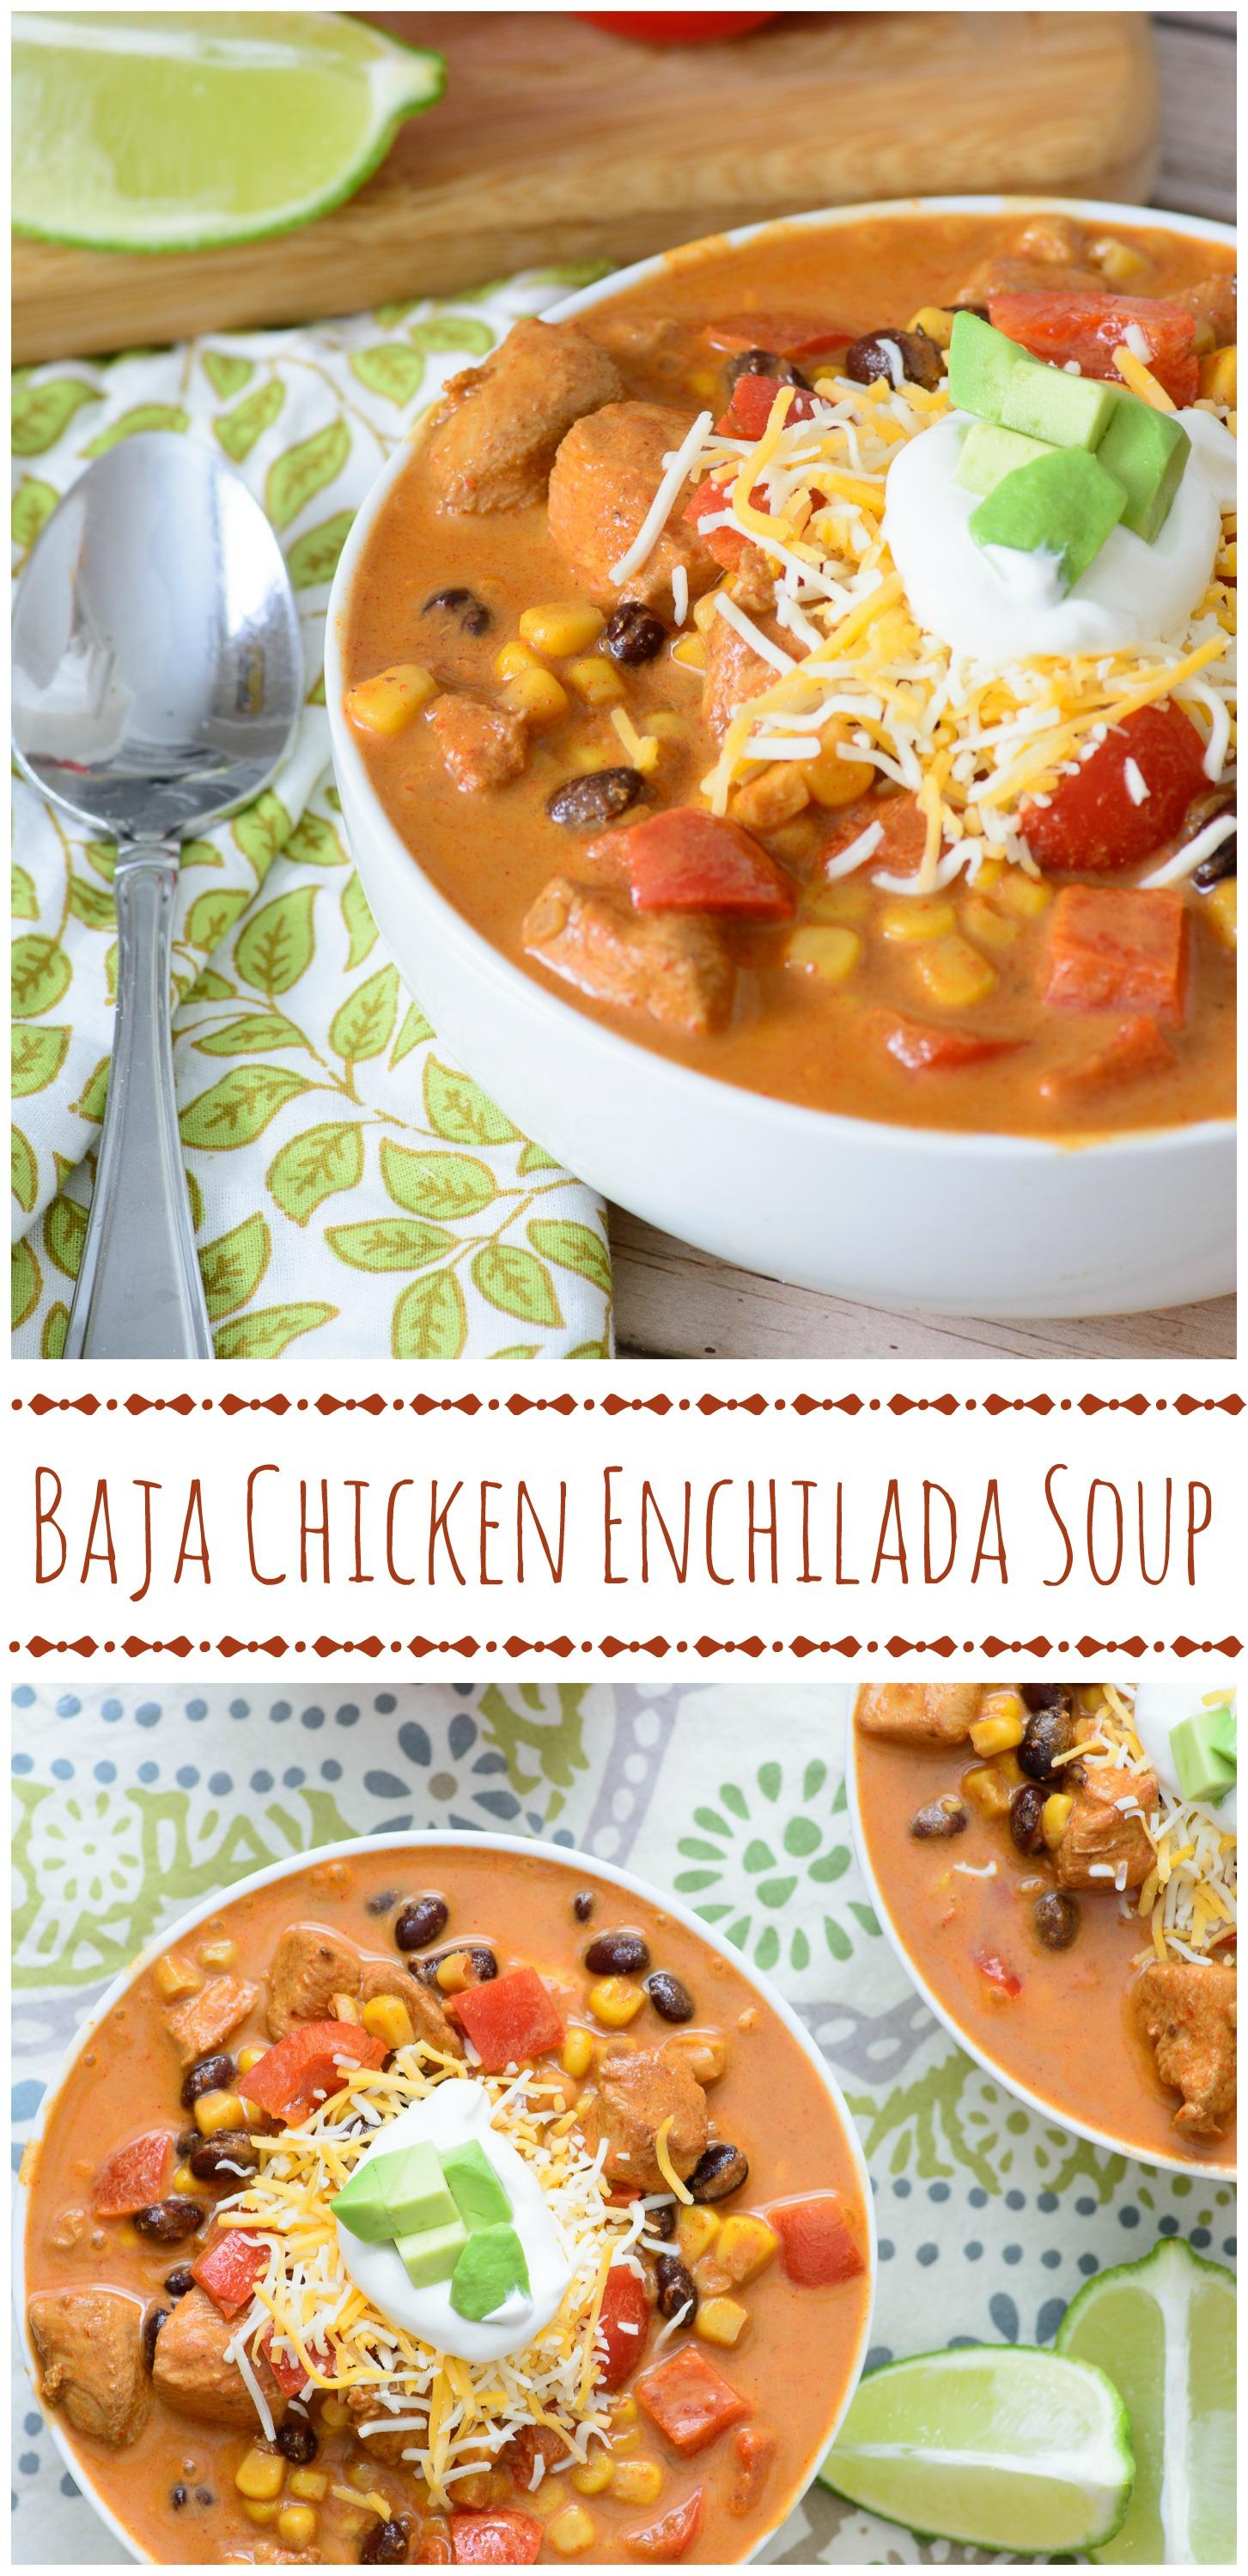 My favorite post from last week's Linky Party is this delicious Baja Chicken Enchilada Soup from Almost Supermom! It's delicious, hearty, and perfect for the cold nights ahead! Find the link here.